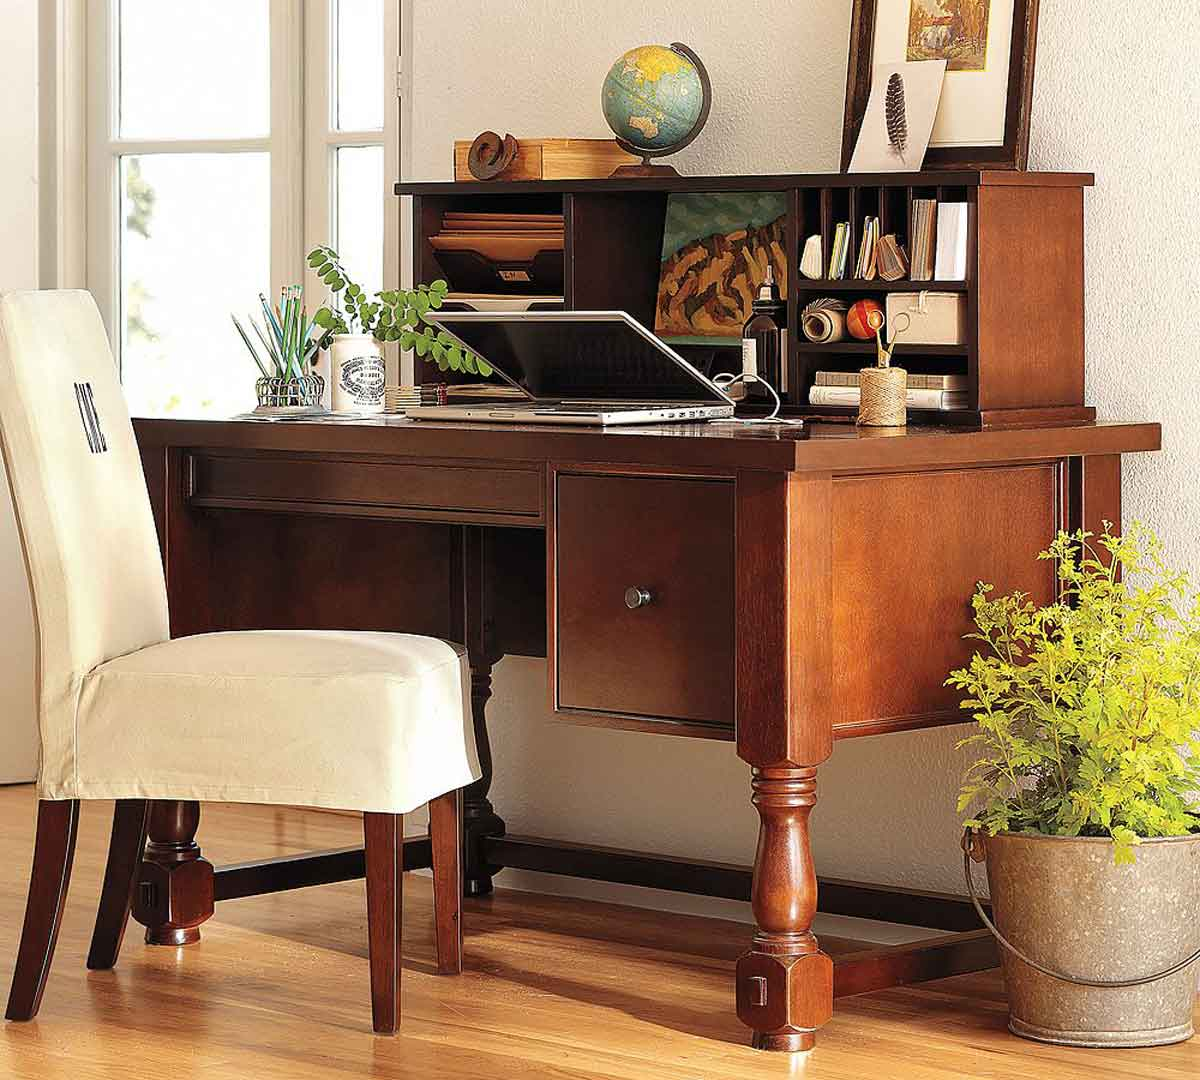 Home Office Decorating Ideas: Home Office Design Ideas